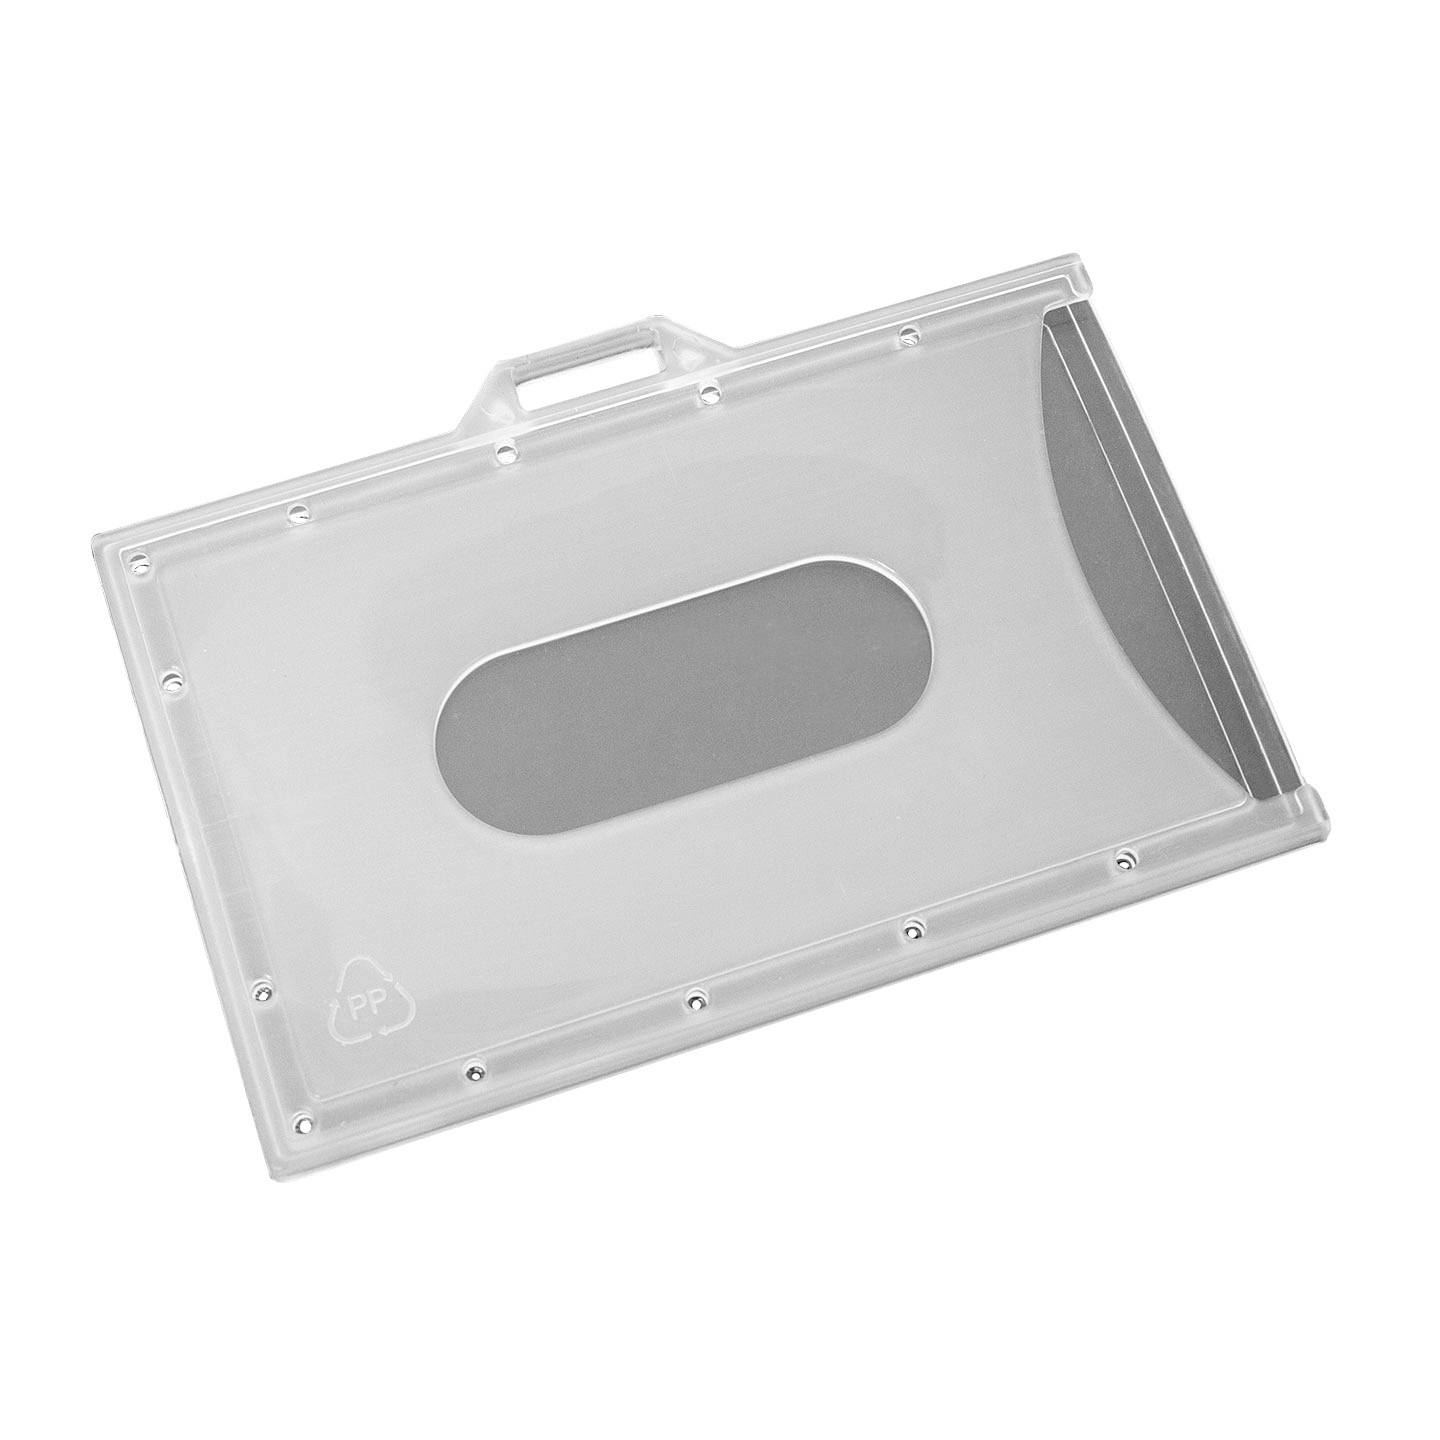 Landscape ID Organizers & ID Card Holders At Record Low Prices